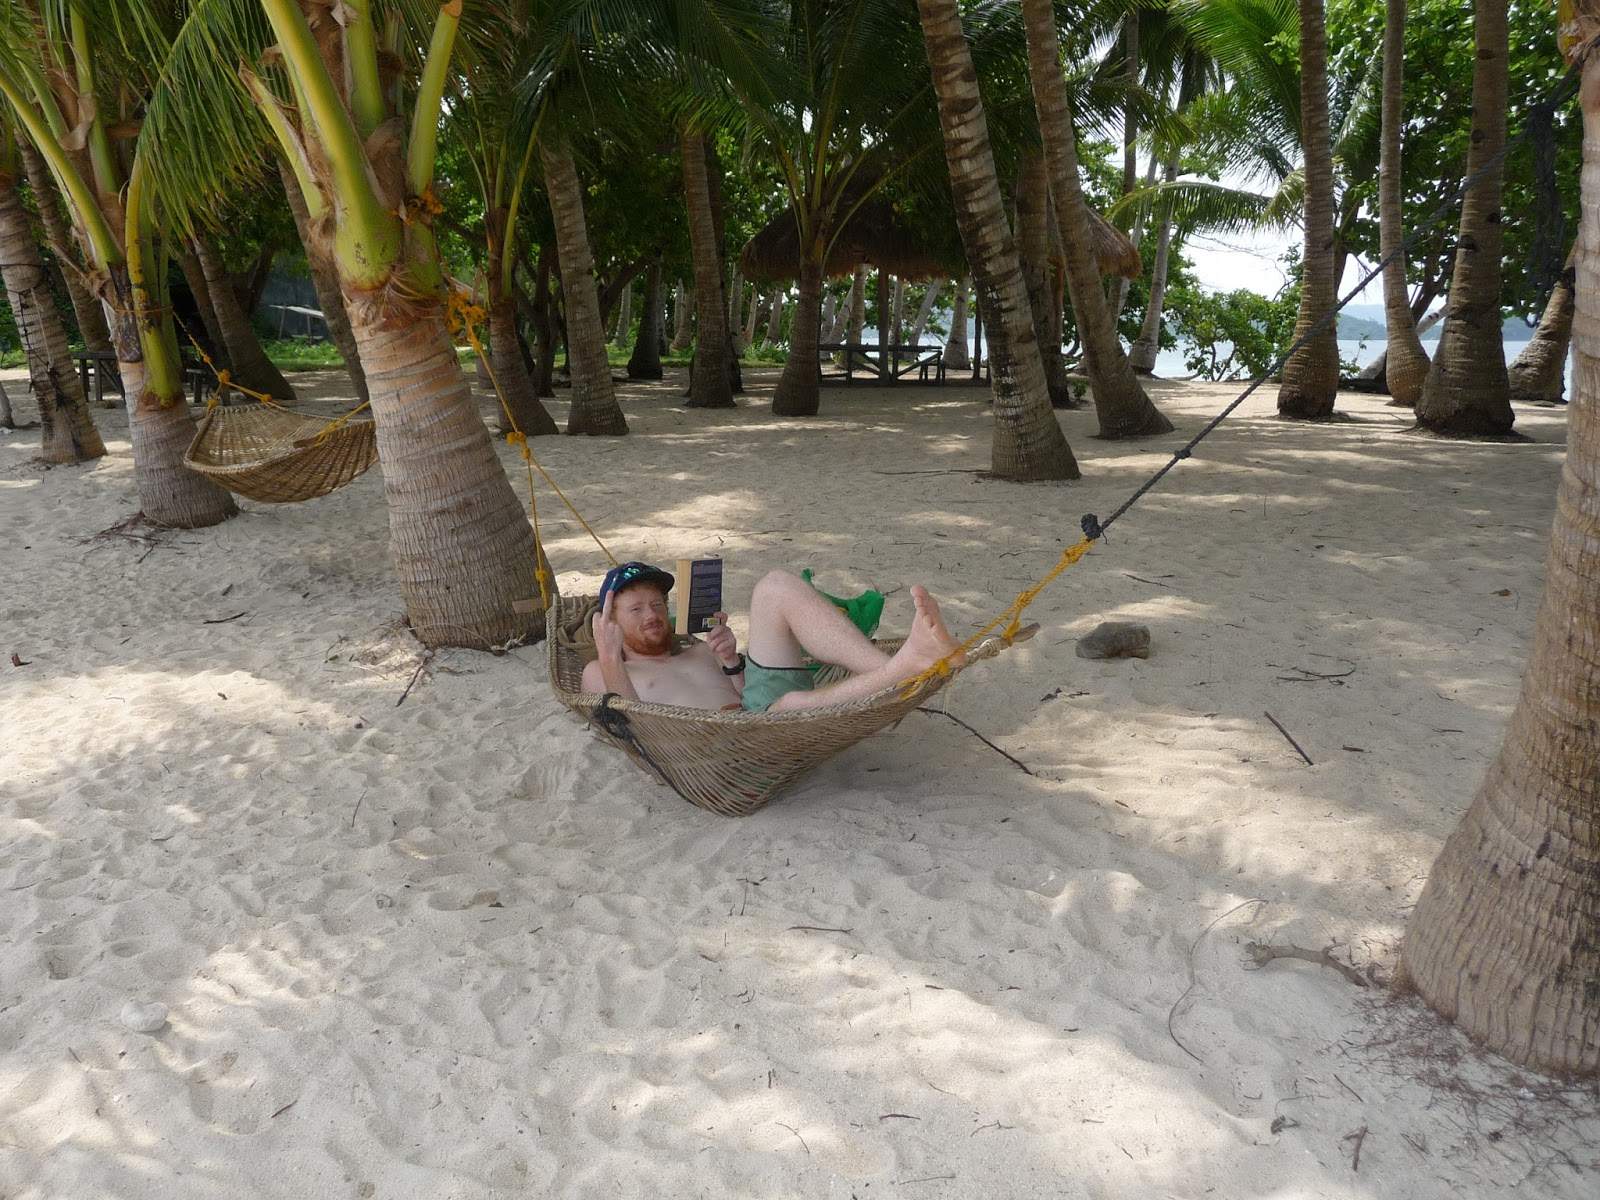 reading on german island in the broken hammock the path of smiles  port barton   the better el nido  rh   pathofsmiles blogspot